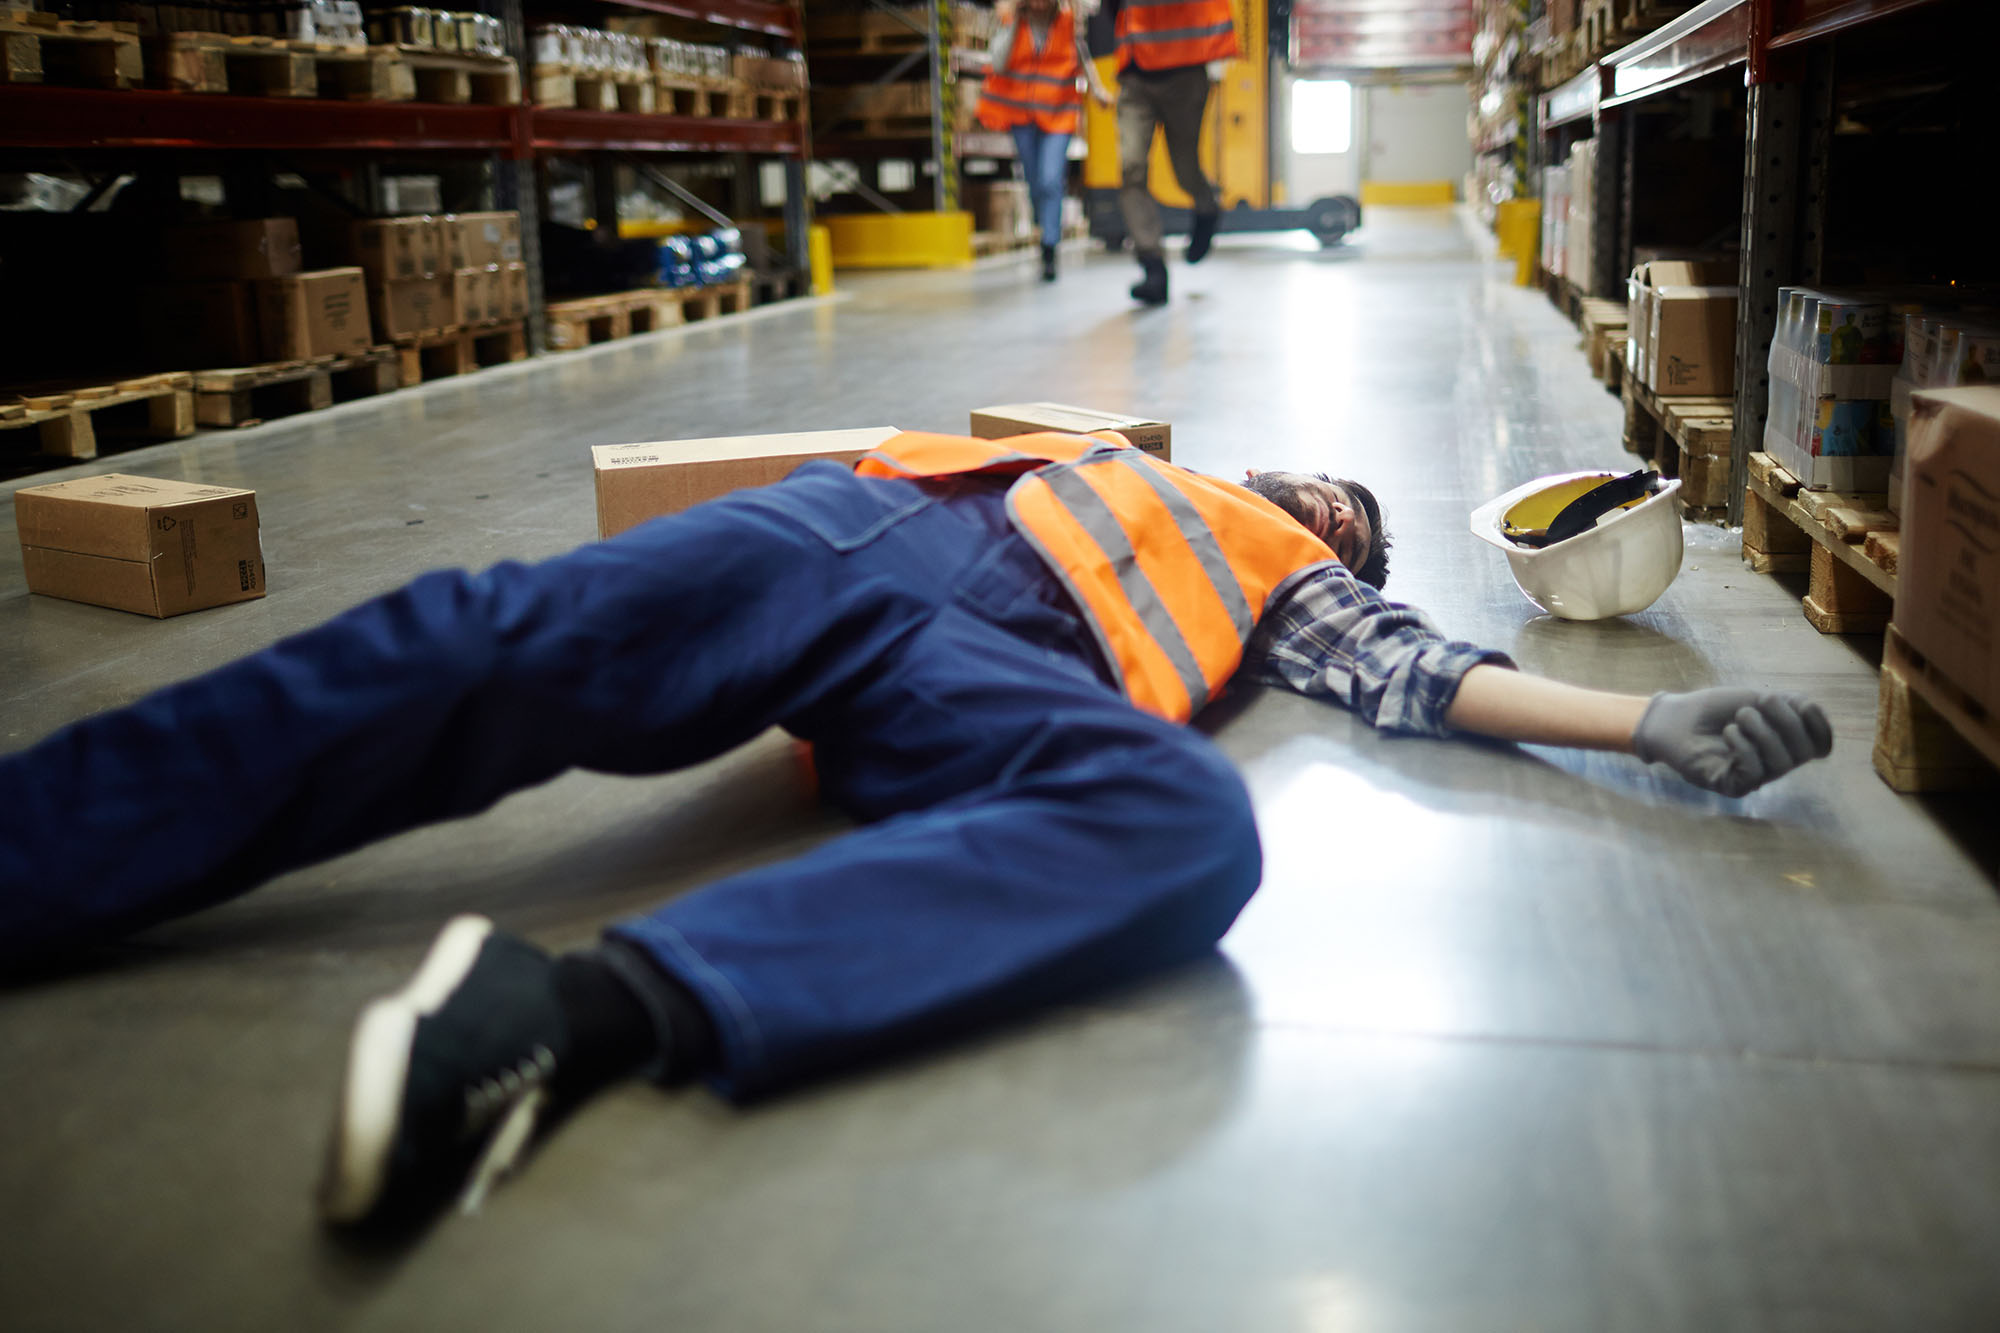 Slipping, tripping and falling on same level at work accident, no win, no fee claims